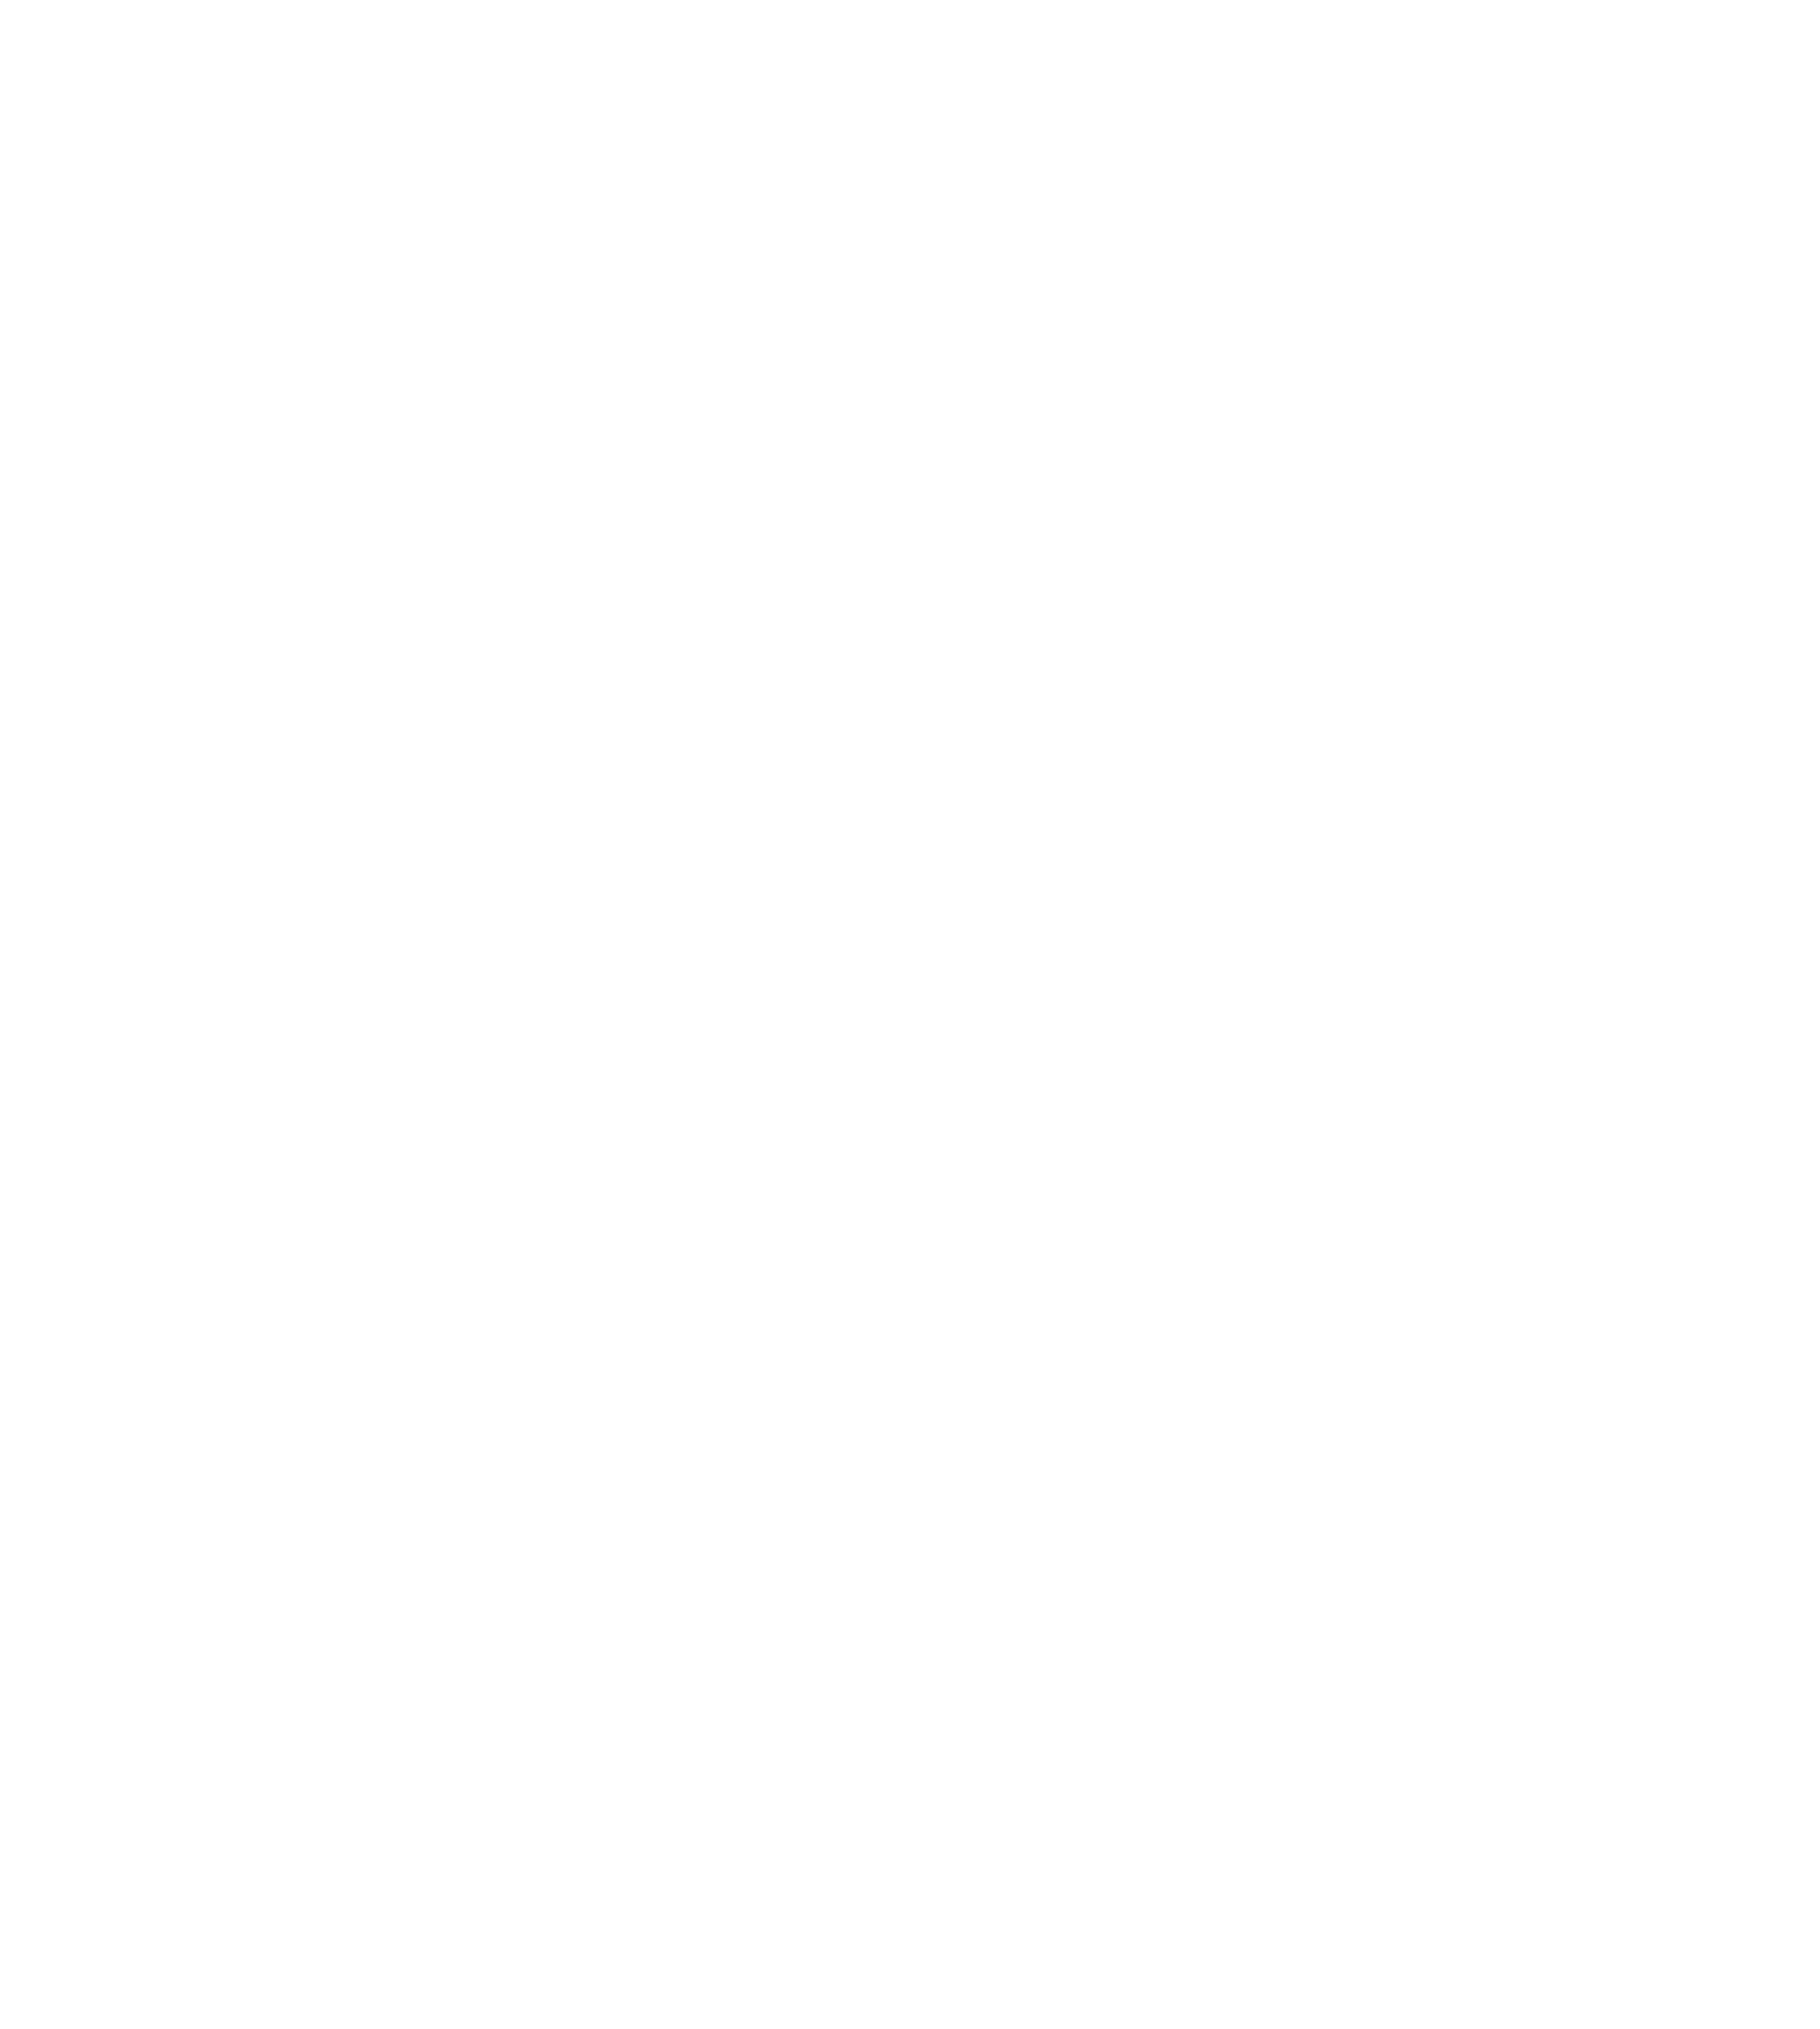 Snowflakes PNG Clip Art Image | Gallery Yopriceville - High-Quality ... clip art transparent download